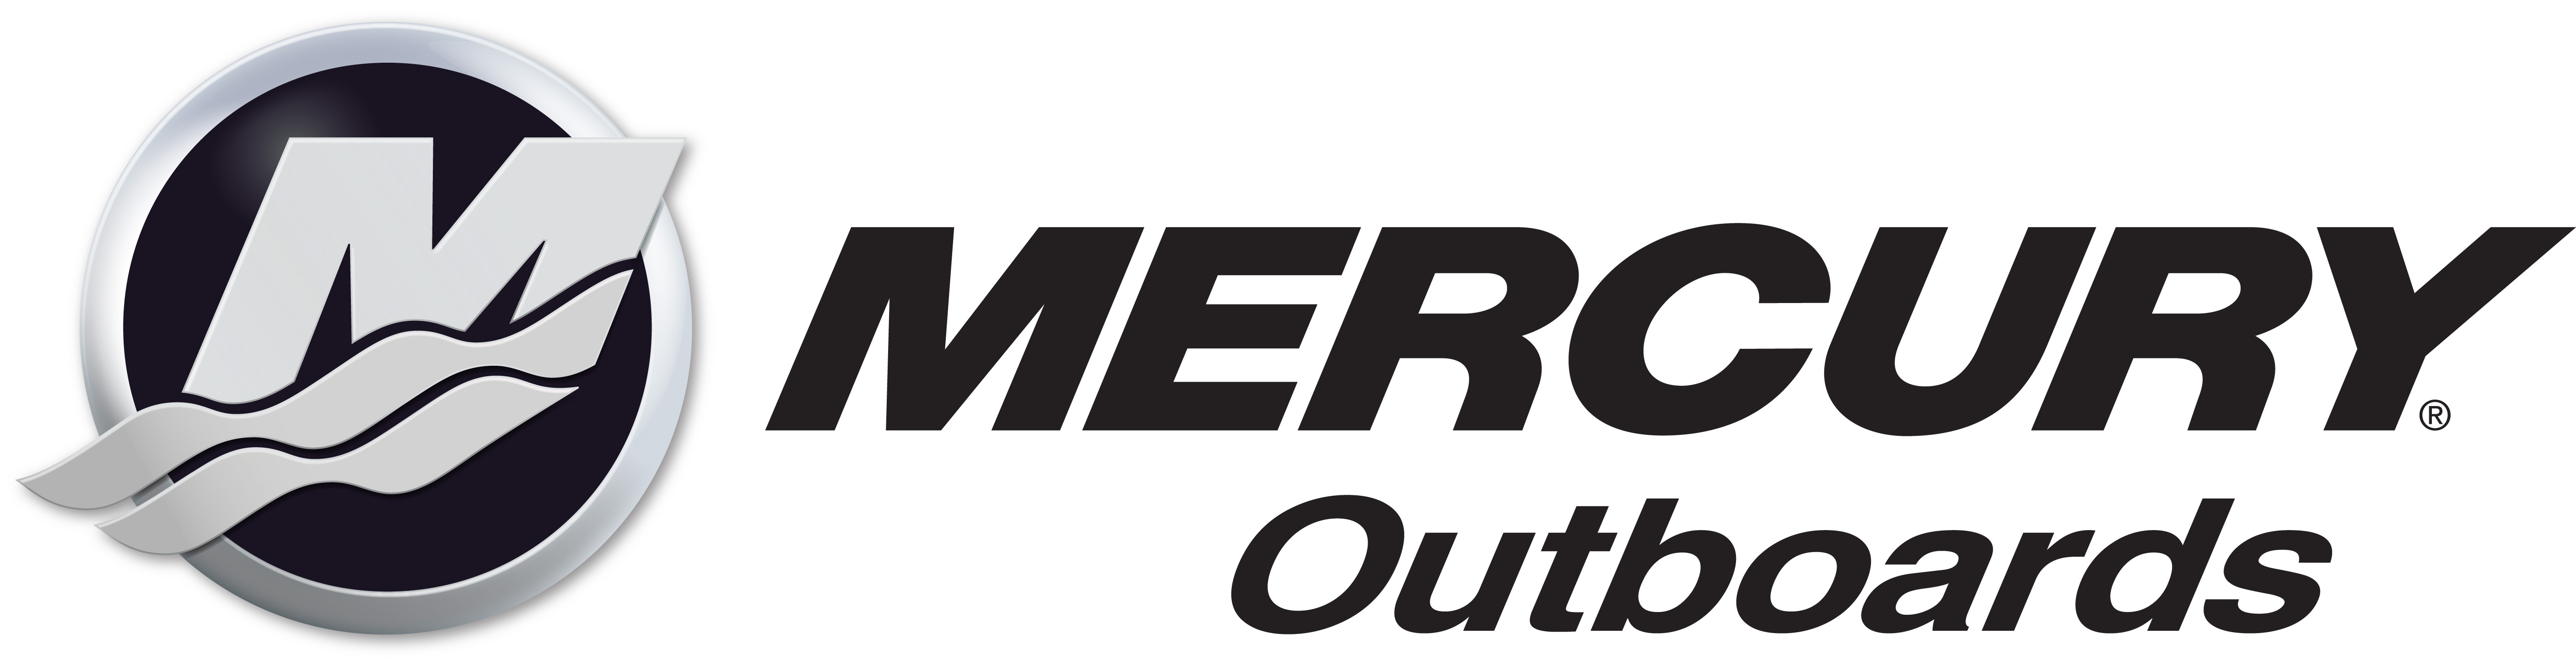 Mercury Outboards Lockup